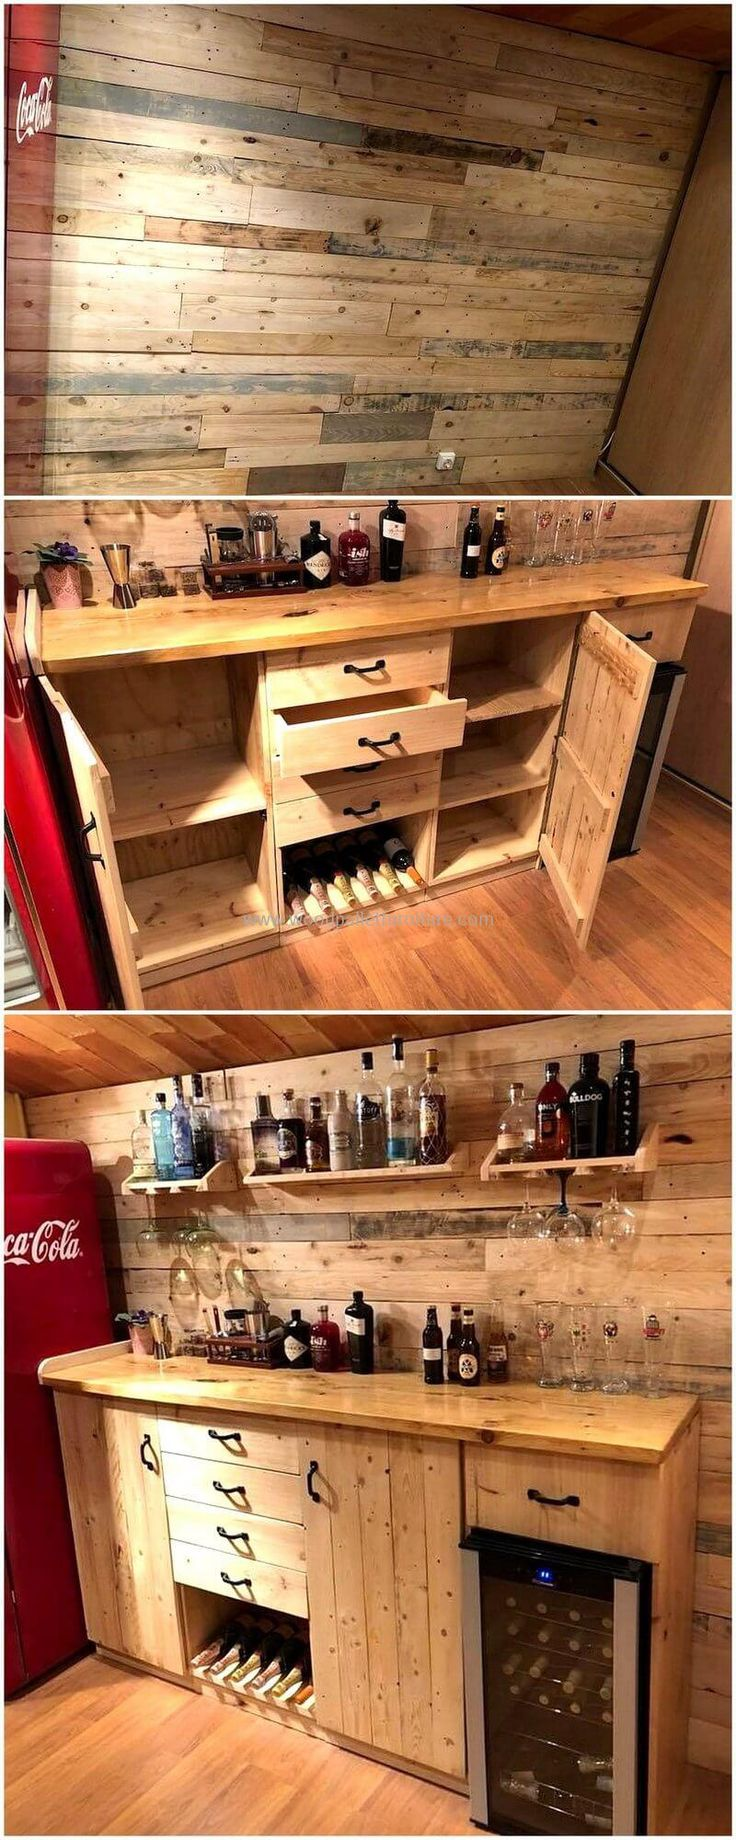 Are you looking for a complete wooden bar structure, if yes then create this pallets bar plan that is not only a complete one to be created but also giving this place an appealing look with it's structure? This pallets bar has everything in it like wooden drawers, cabins, shelves and much more.